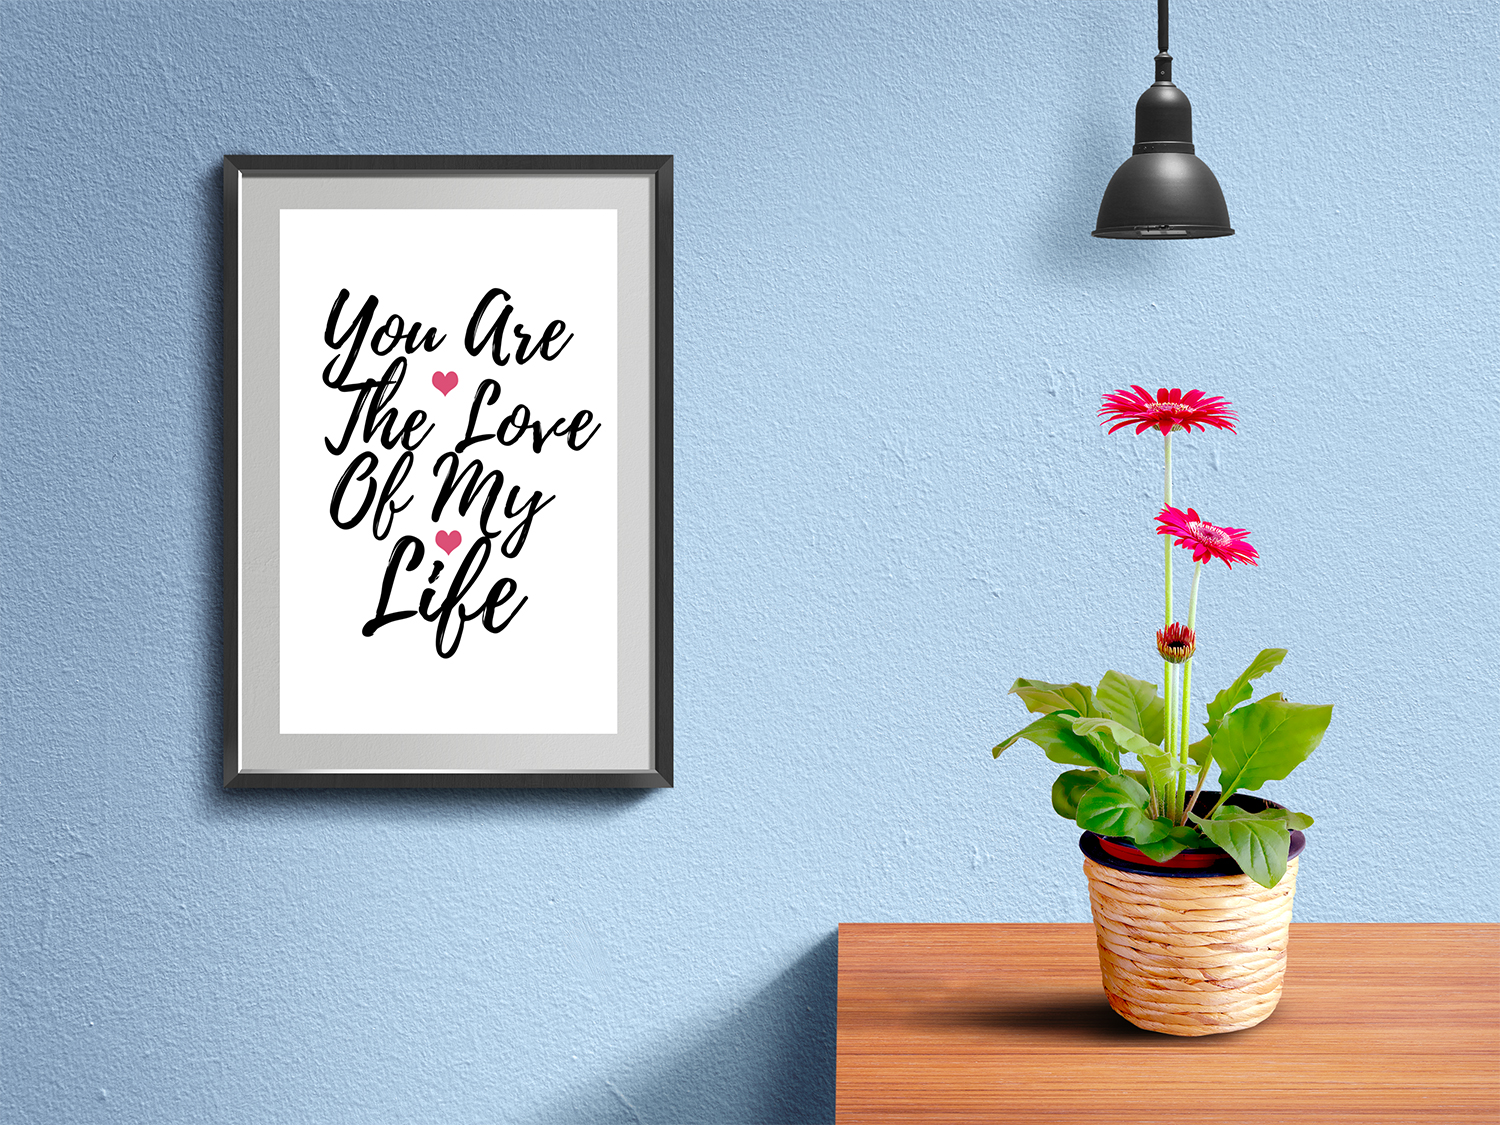 Wall Frame and Poster Mockup